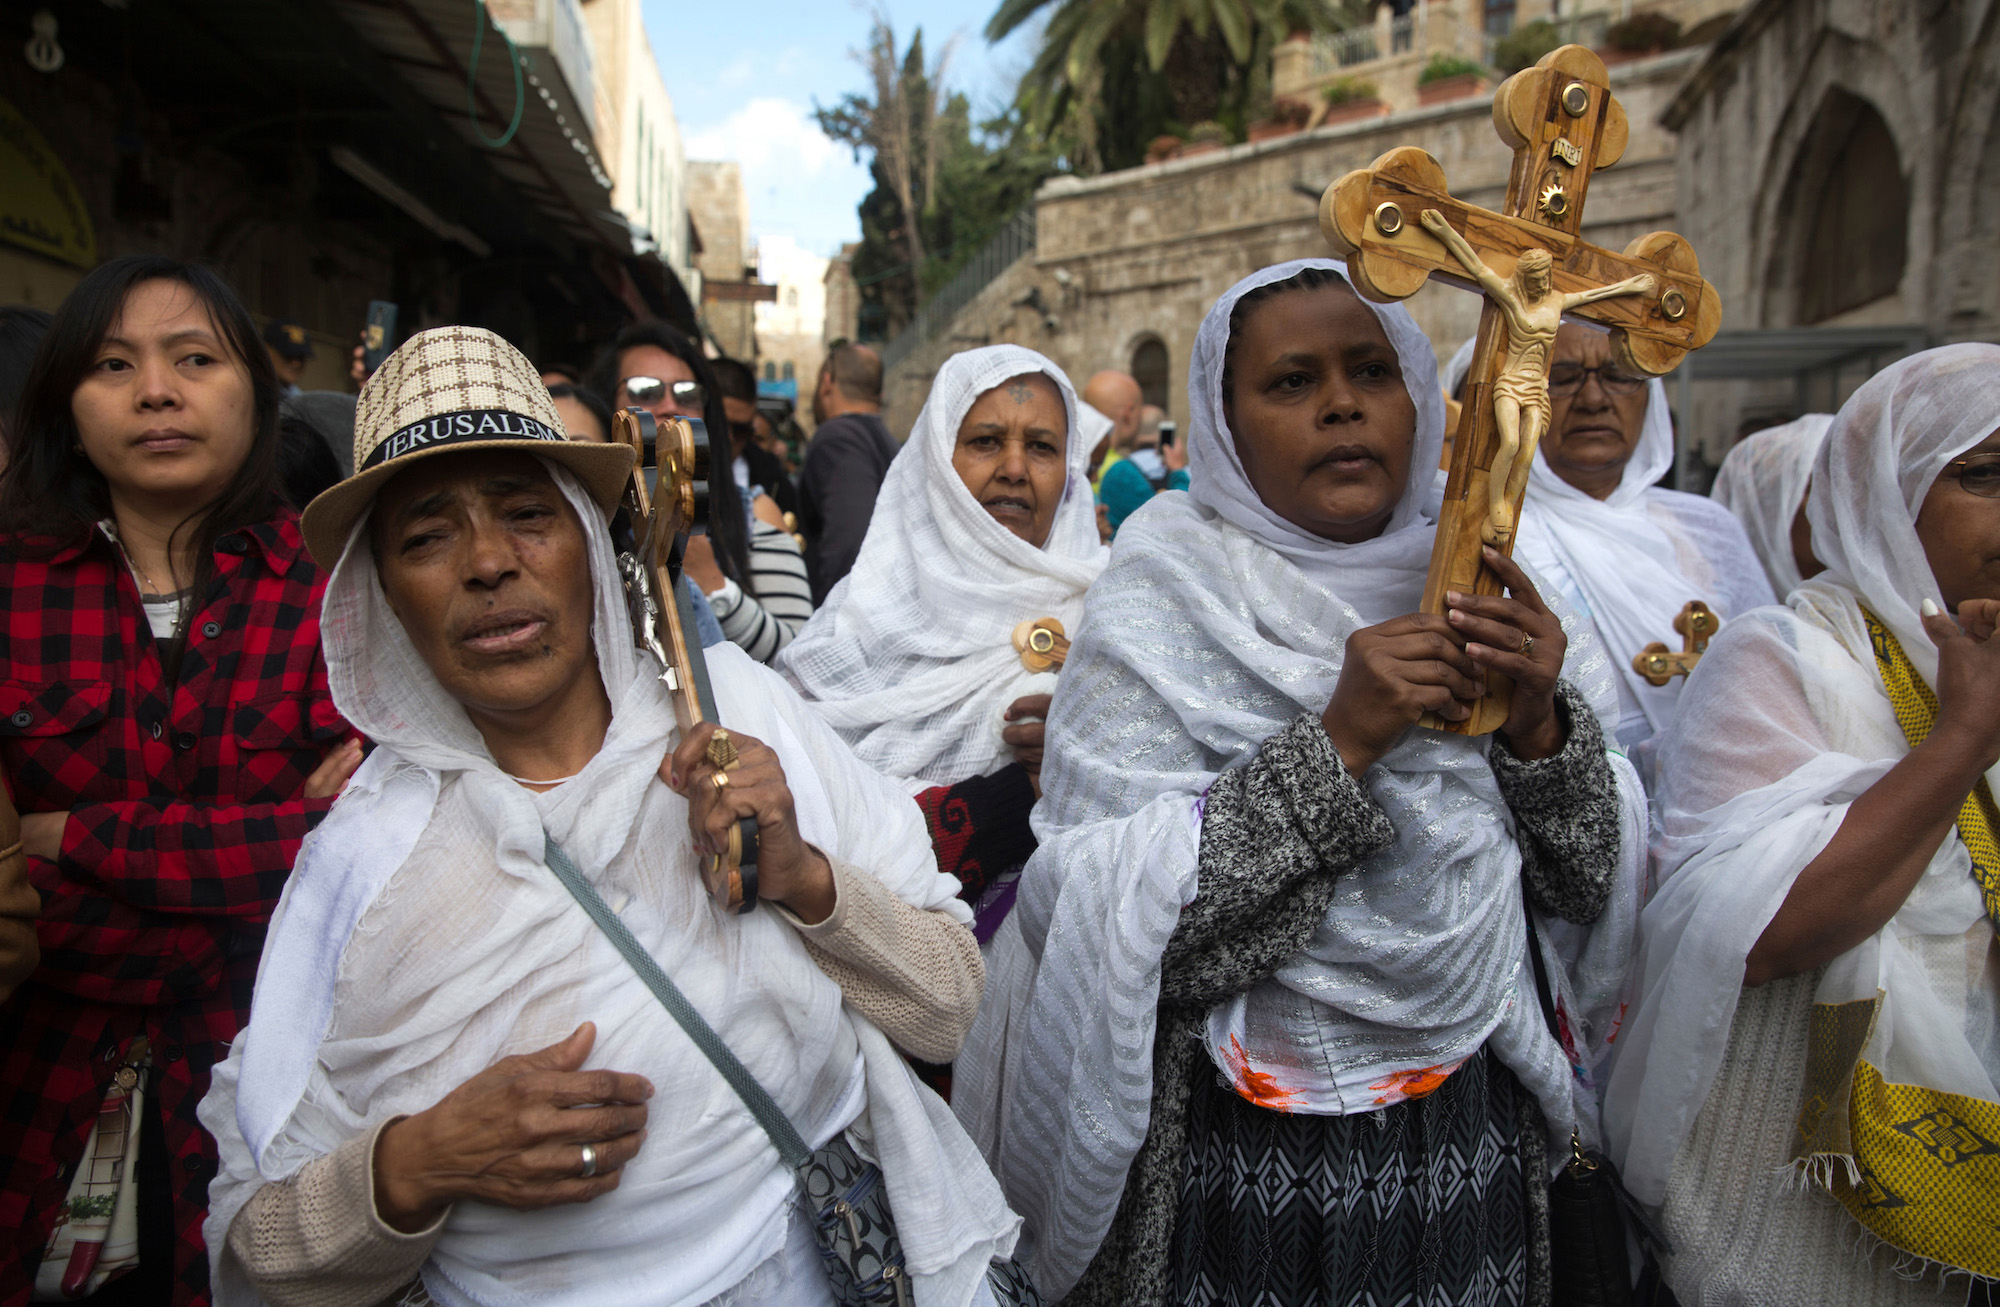 "Christian pilgrims from Eritrea are seen amongst the thousands of pilgrims from all over the world who carried wooden crosses along the Via Dolorosa, or ""The Way of Sorrow"" in the Old City of Jerusalem on April 14, 2017. The Good Friday procession remembers the day Jesus was sentenced to death and crucified. Christian faith holds that two days later, on Easter Sunday, Jesus rose from the dead. (Photo by Heidi Levine/GroundTruth)"